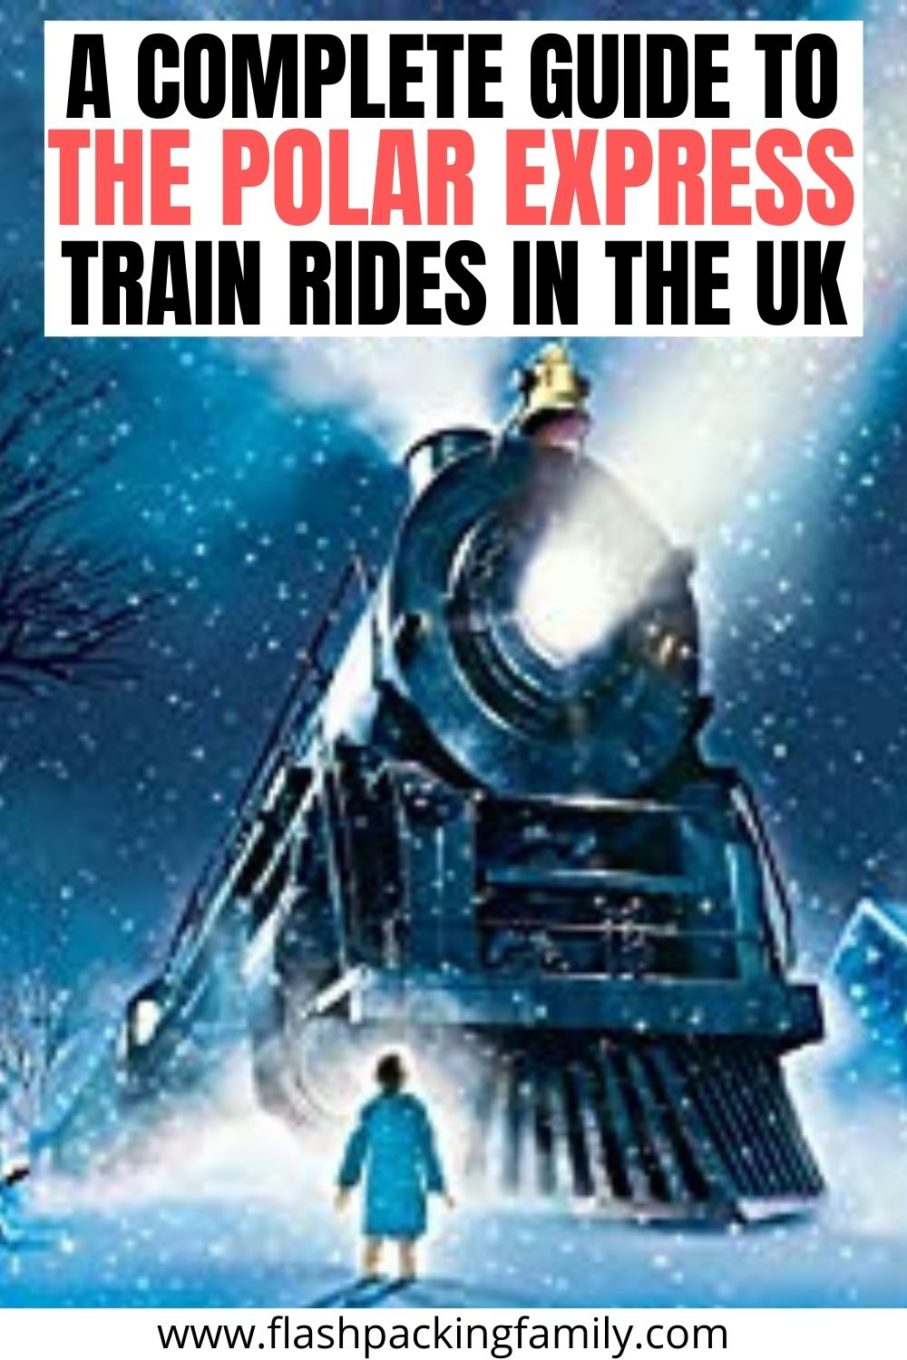 A Complete Guide to the Polar Express Train Rides in the UK.